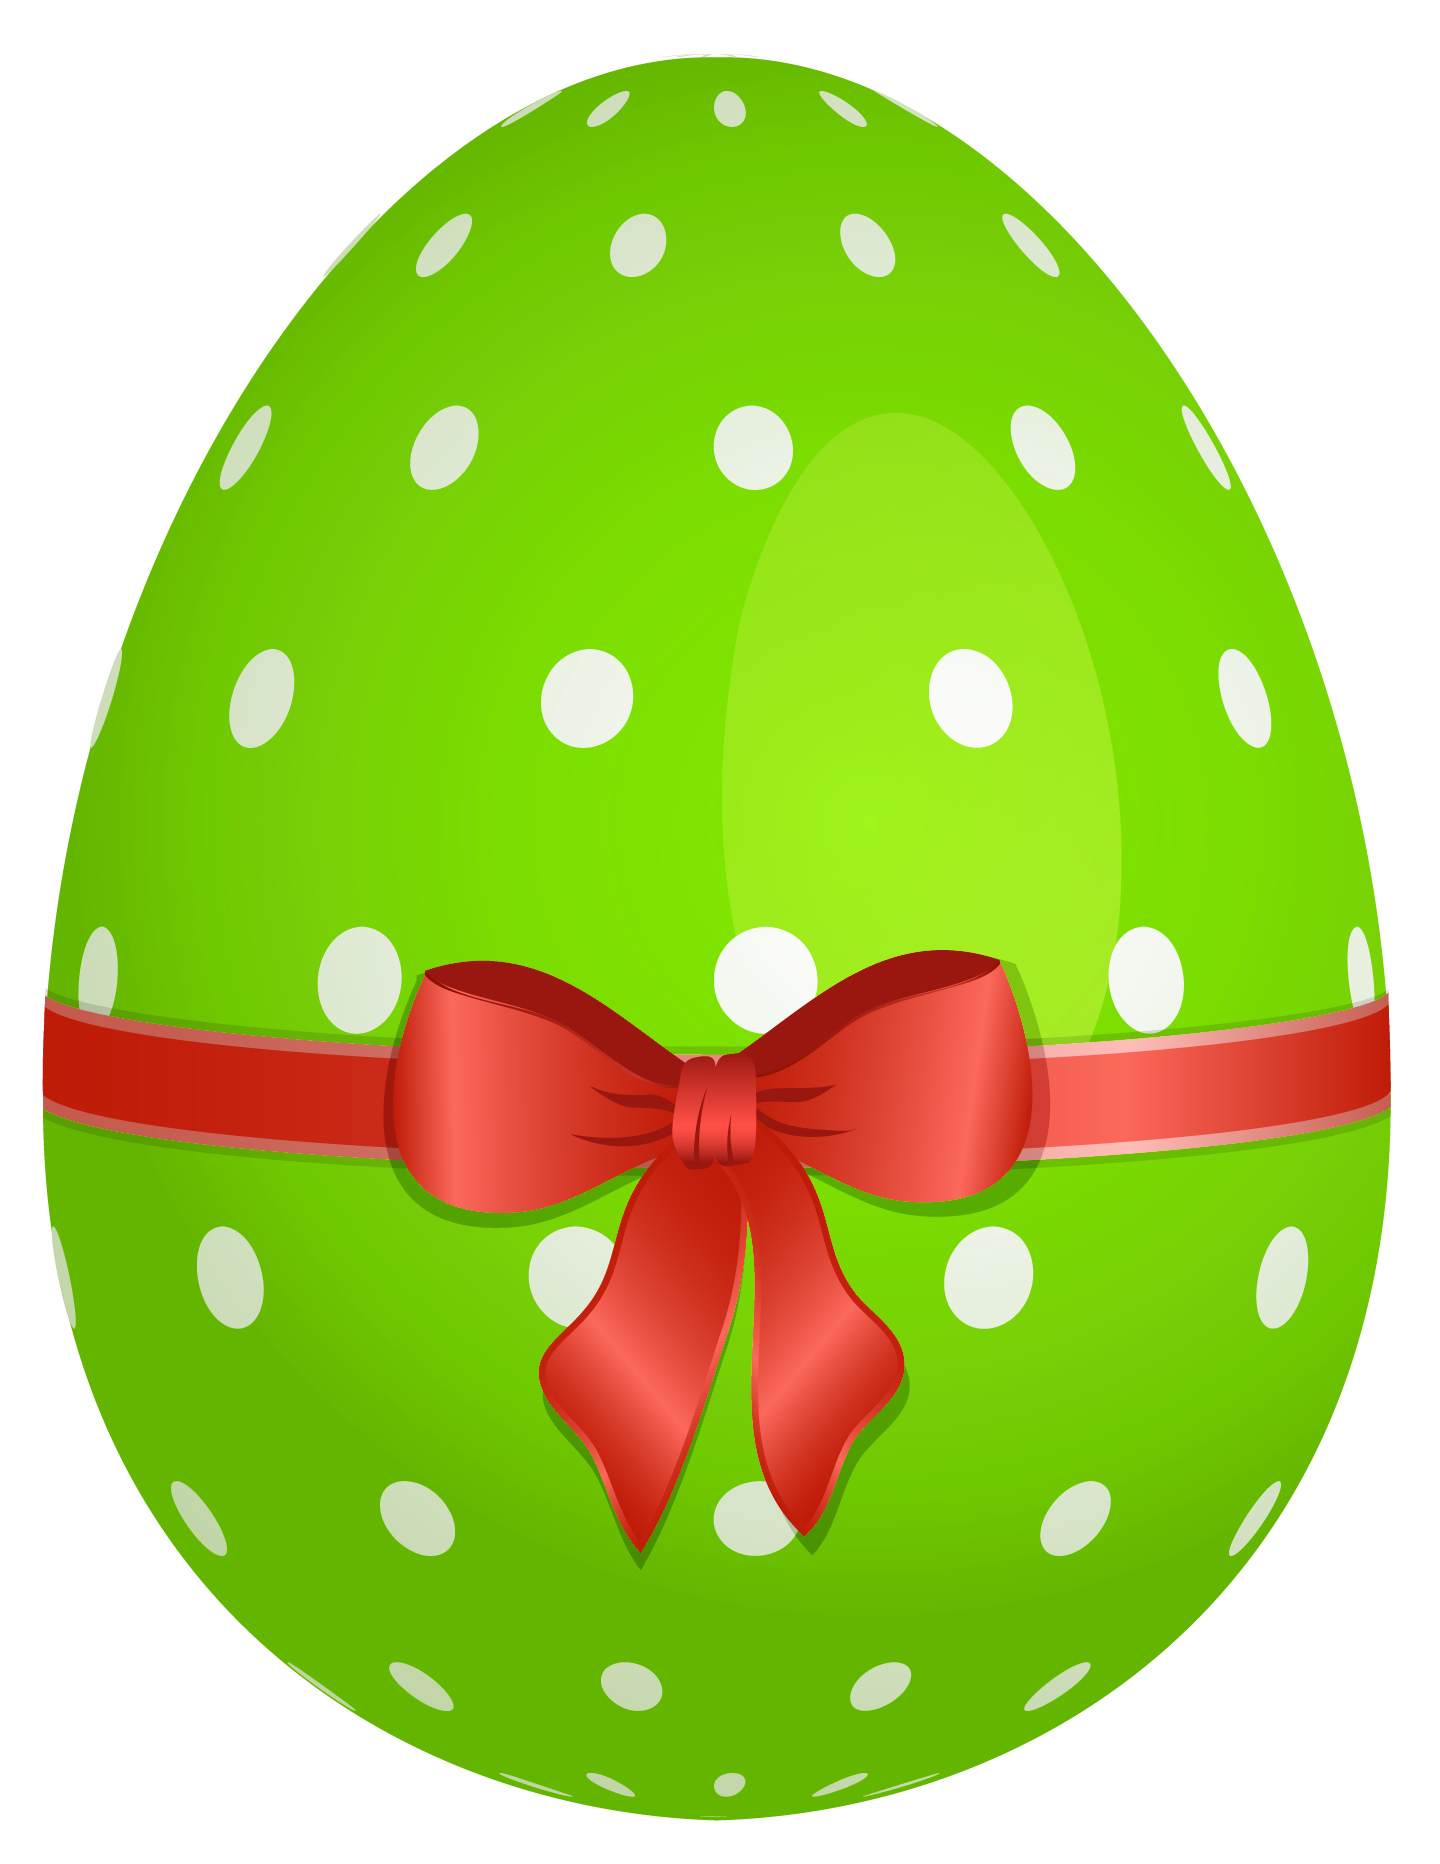 hight resolution of free download microsoft gallery easter eggs clipart for your creation